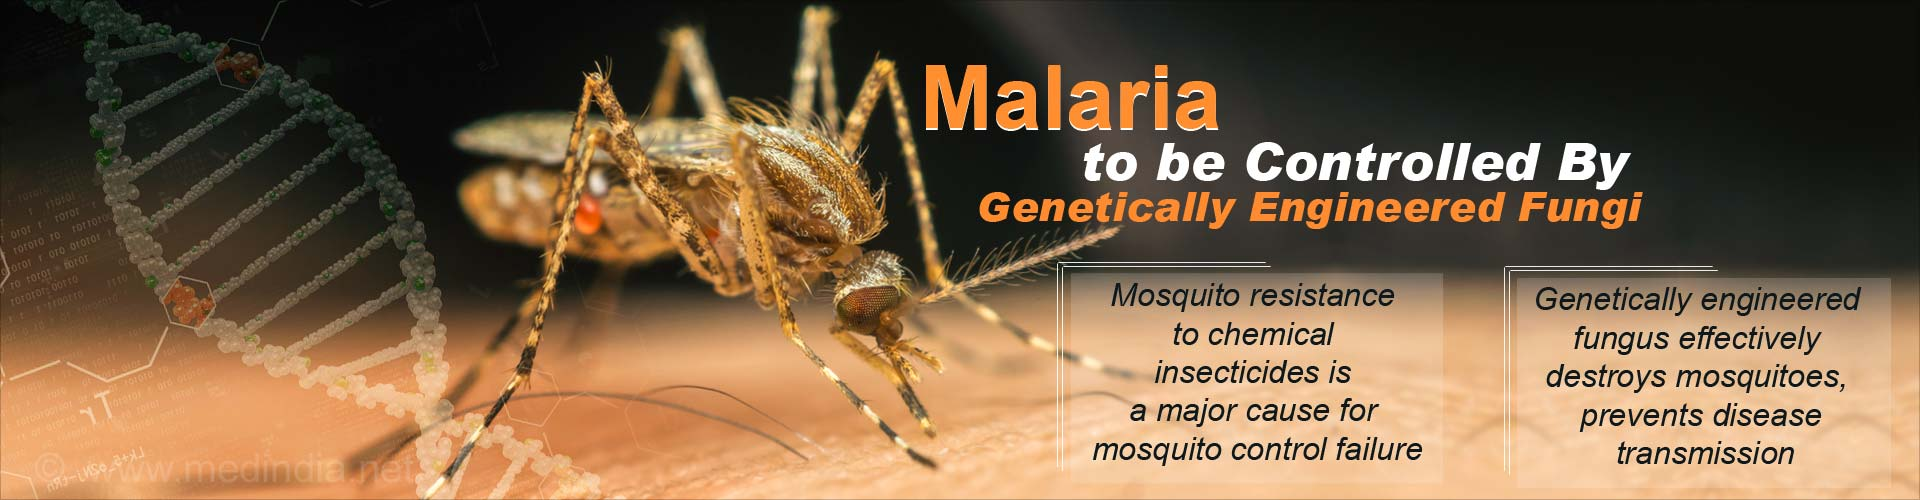 Natural Killers Fungi to be Genetically Engineered to Combat Malaria